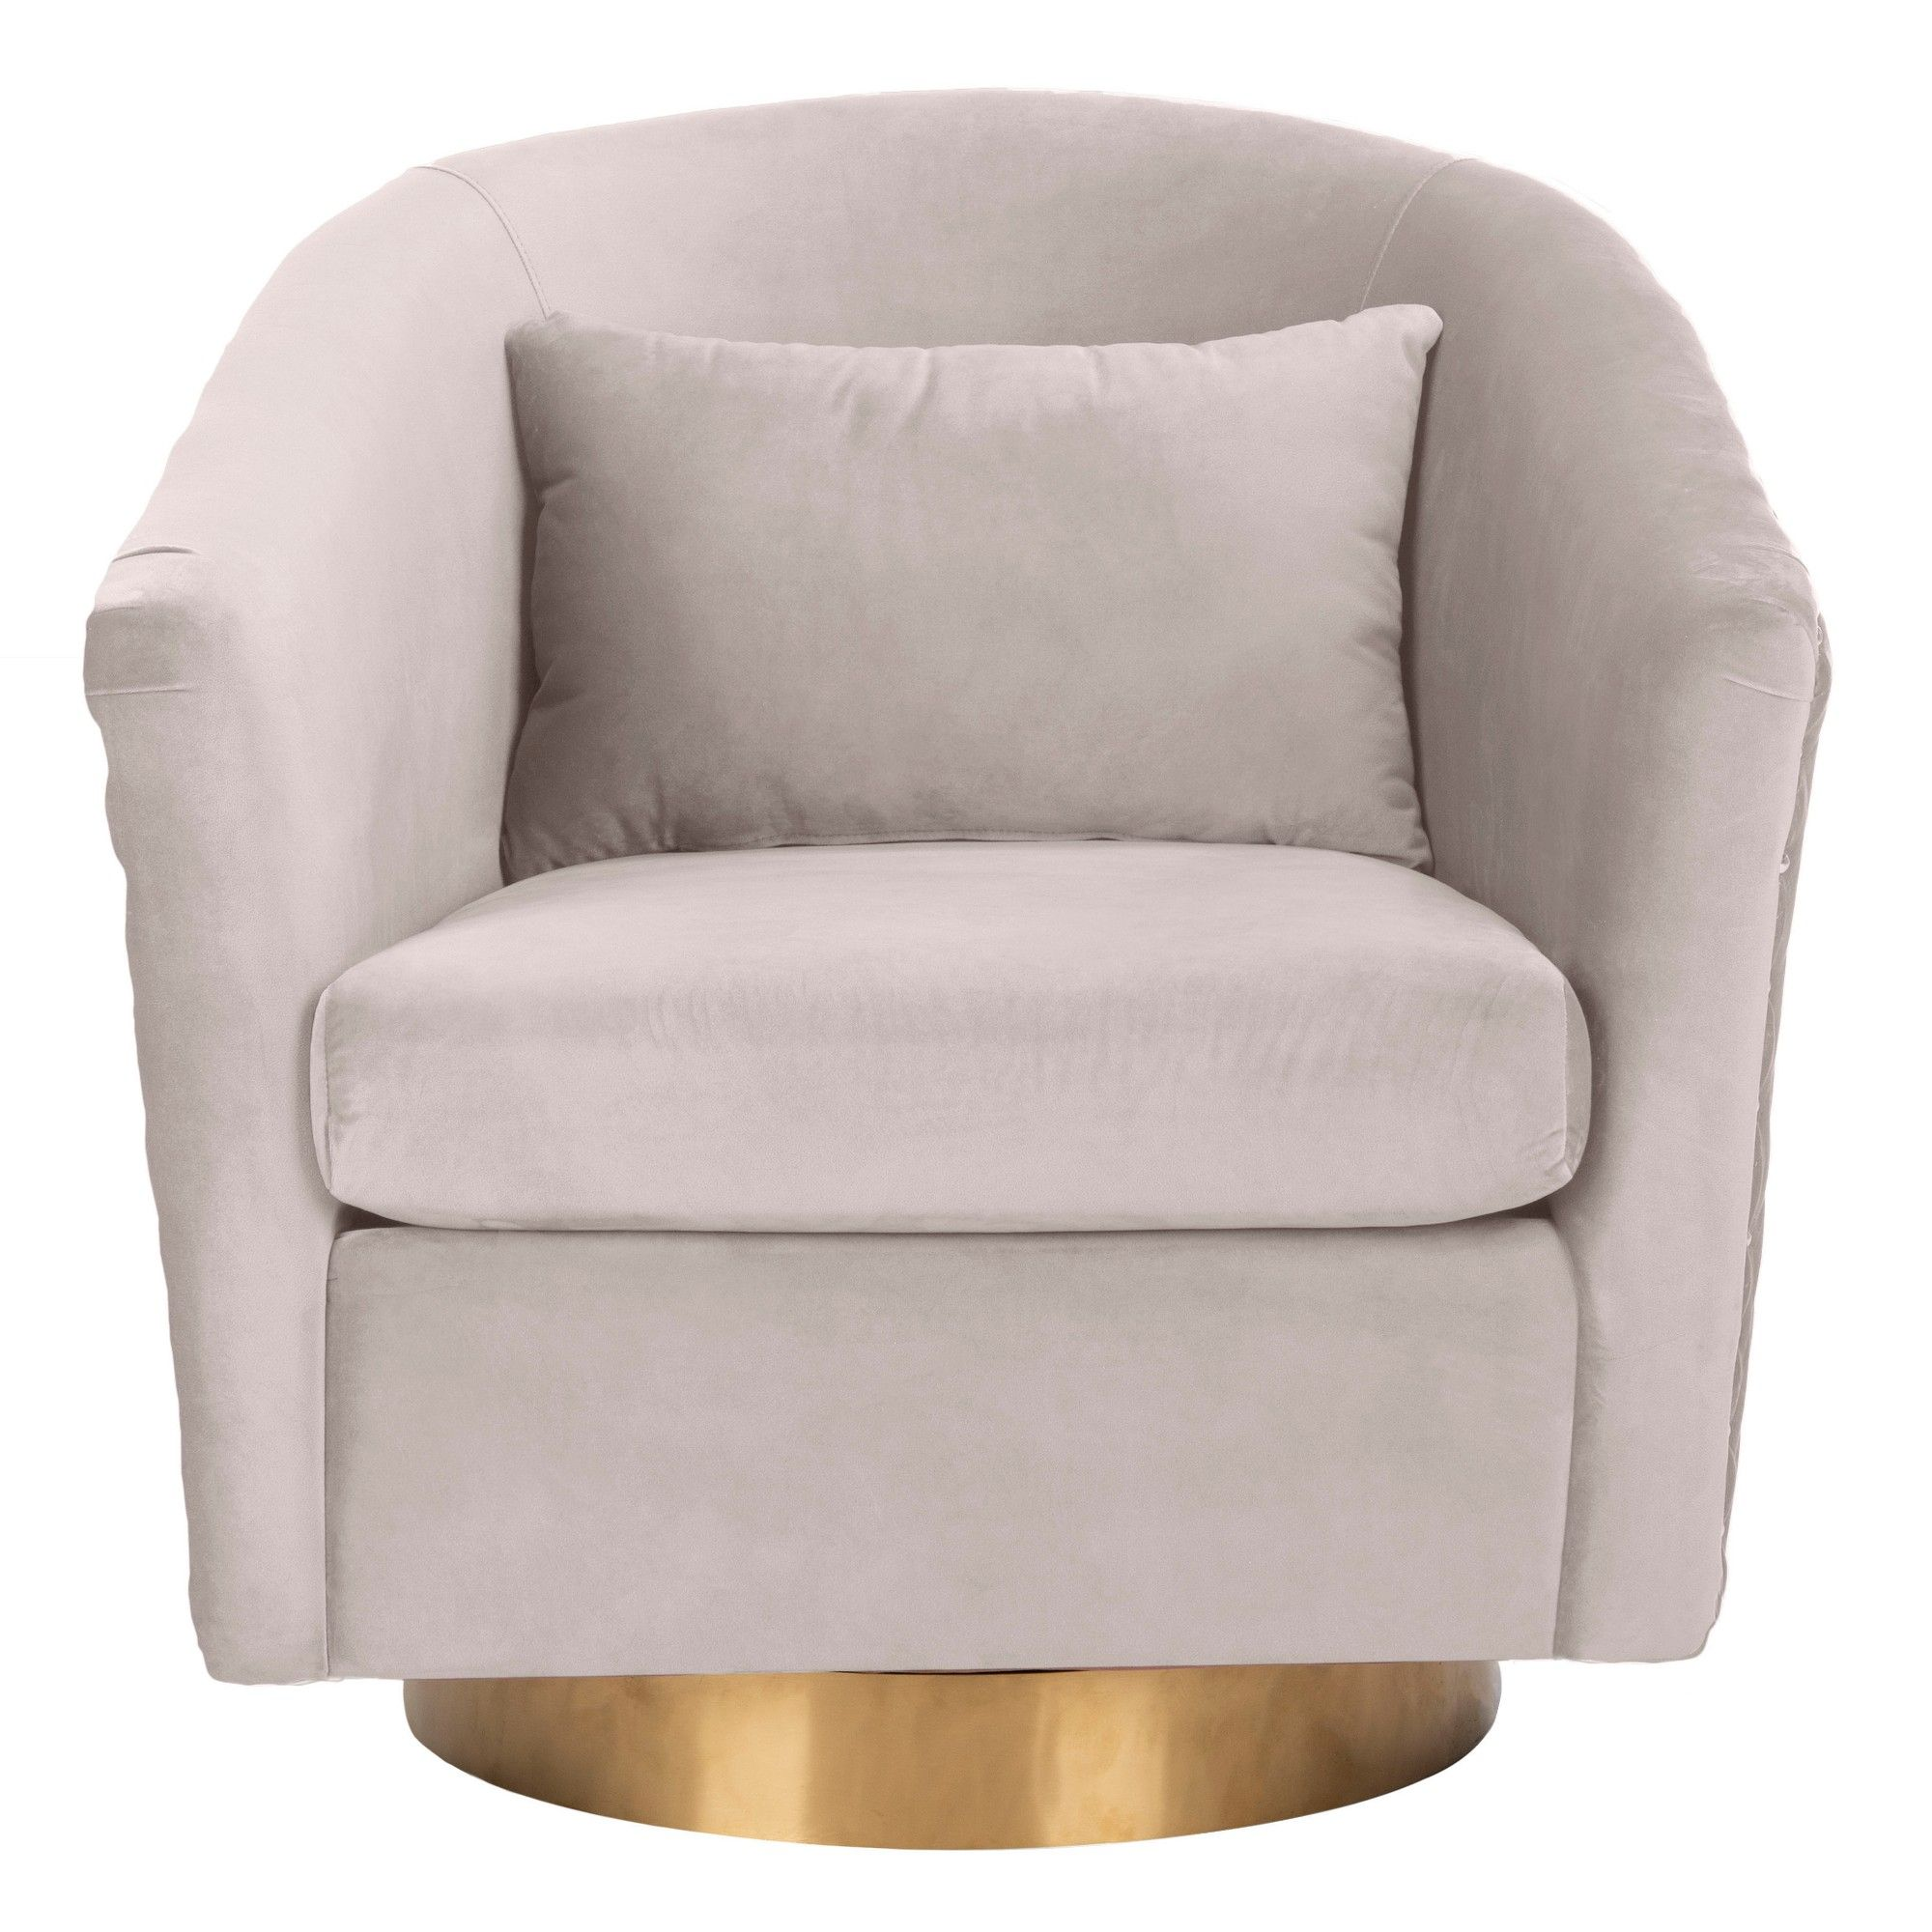 Swivel Tub Chair Clara Quilted Swivel Tub Chair Pale Taupe Safavieh Products